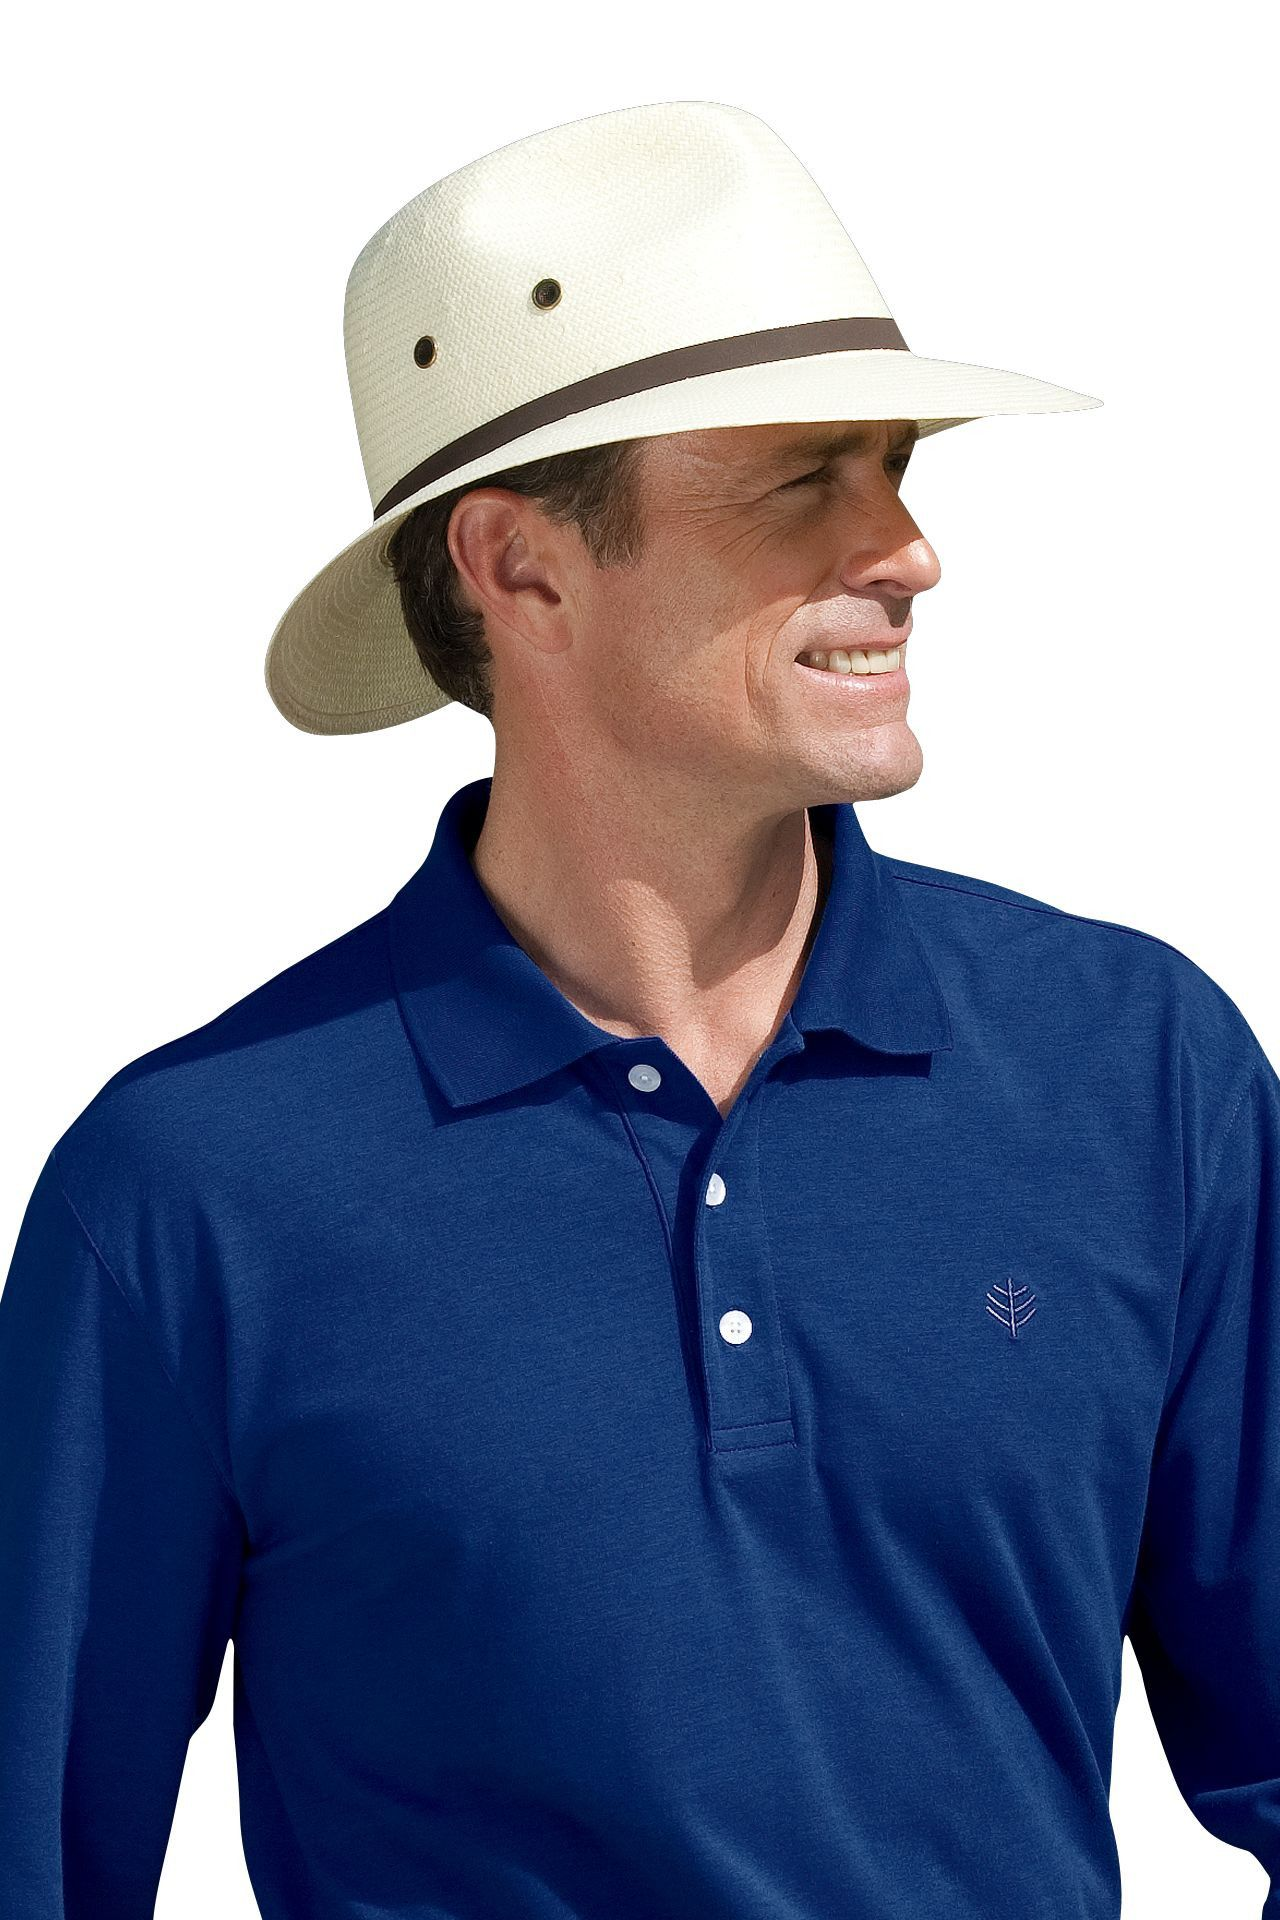 1b656f33f0e Not all men s golf hats offer style and UV protection rolled into one. Our  Coolibar Fairway Golf Hat is a classic choice for shading the sensitive  skin on ...